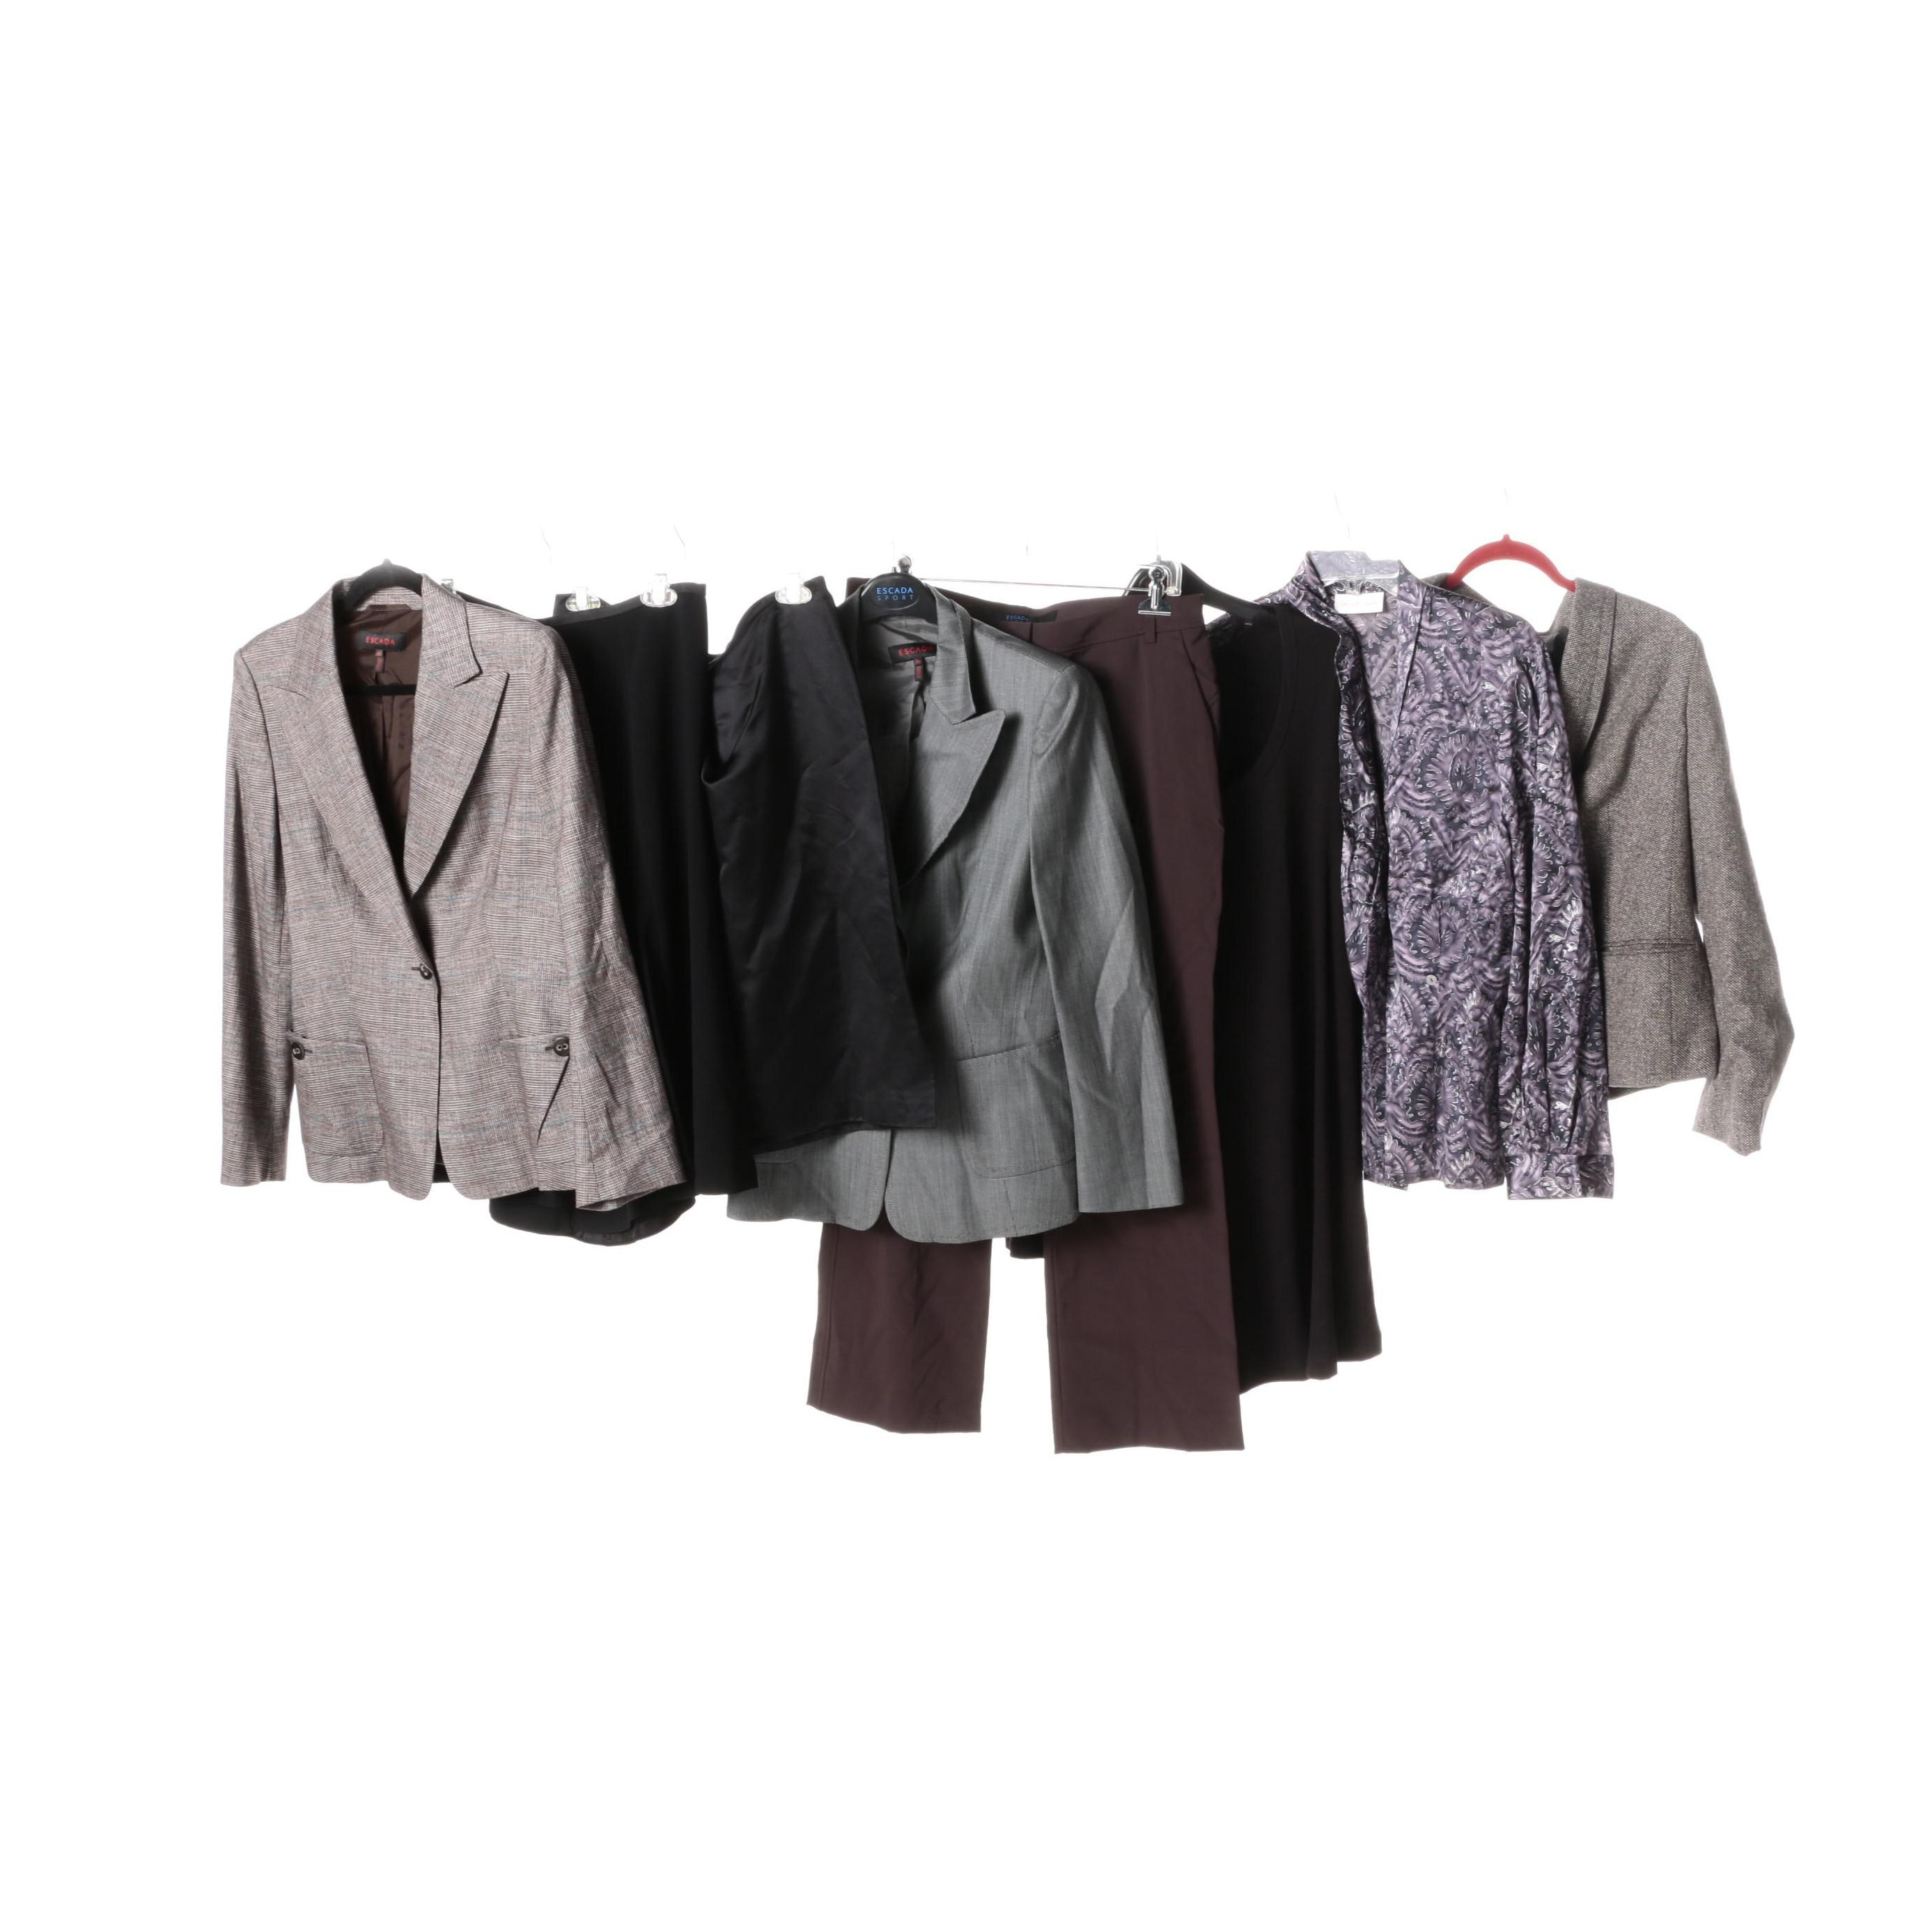 Women's Suiting Separates Featuring Escada